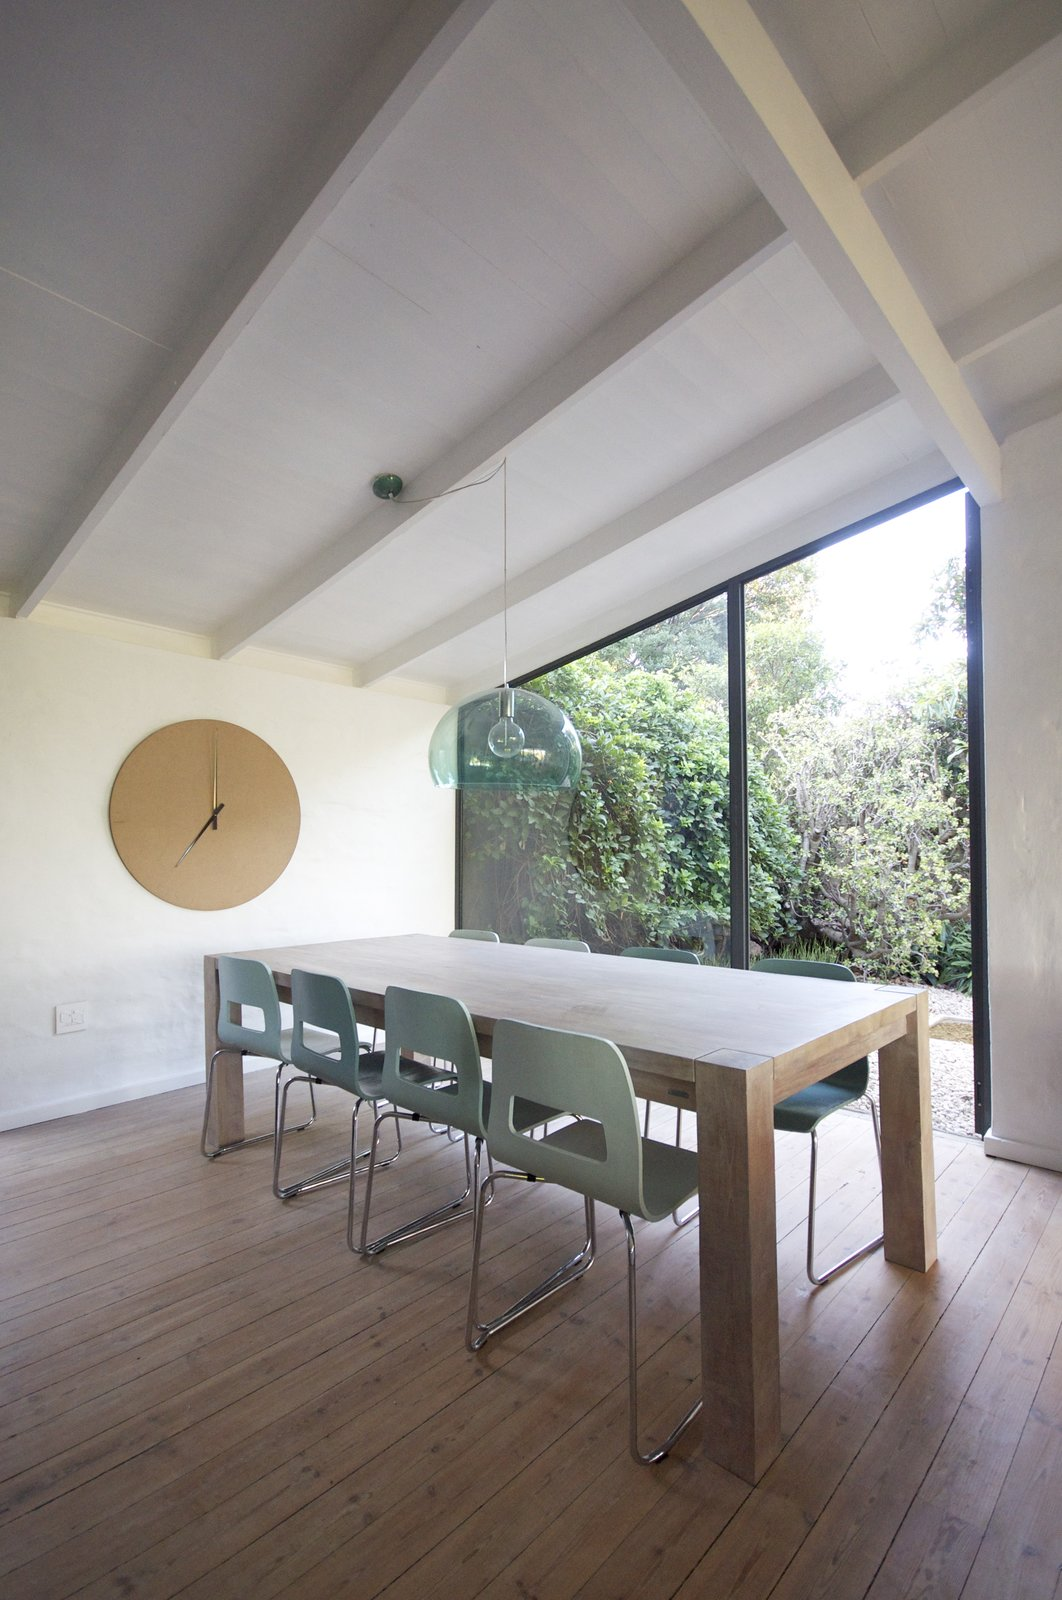 Dining Room, Pendant Lighting, Table, Chair, Light Hardwood Floor, and Ceiling Lighting the dining area with a view of the garden  Grey House